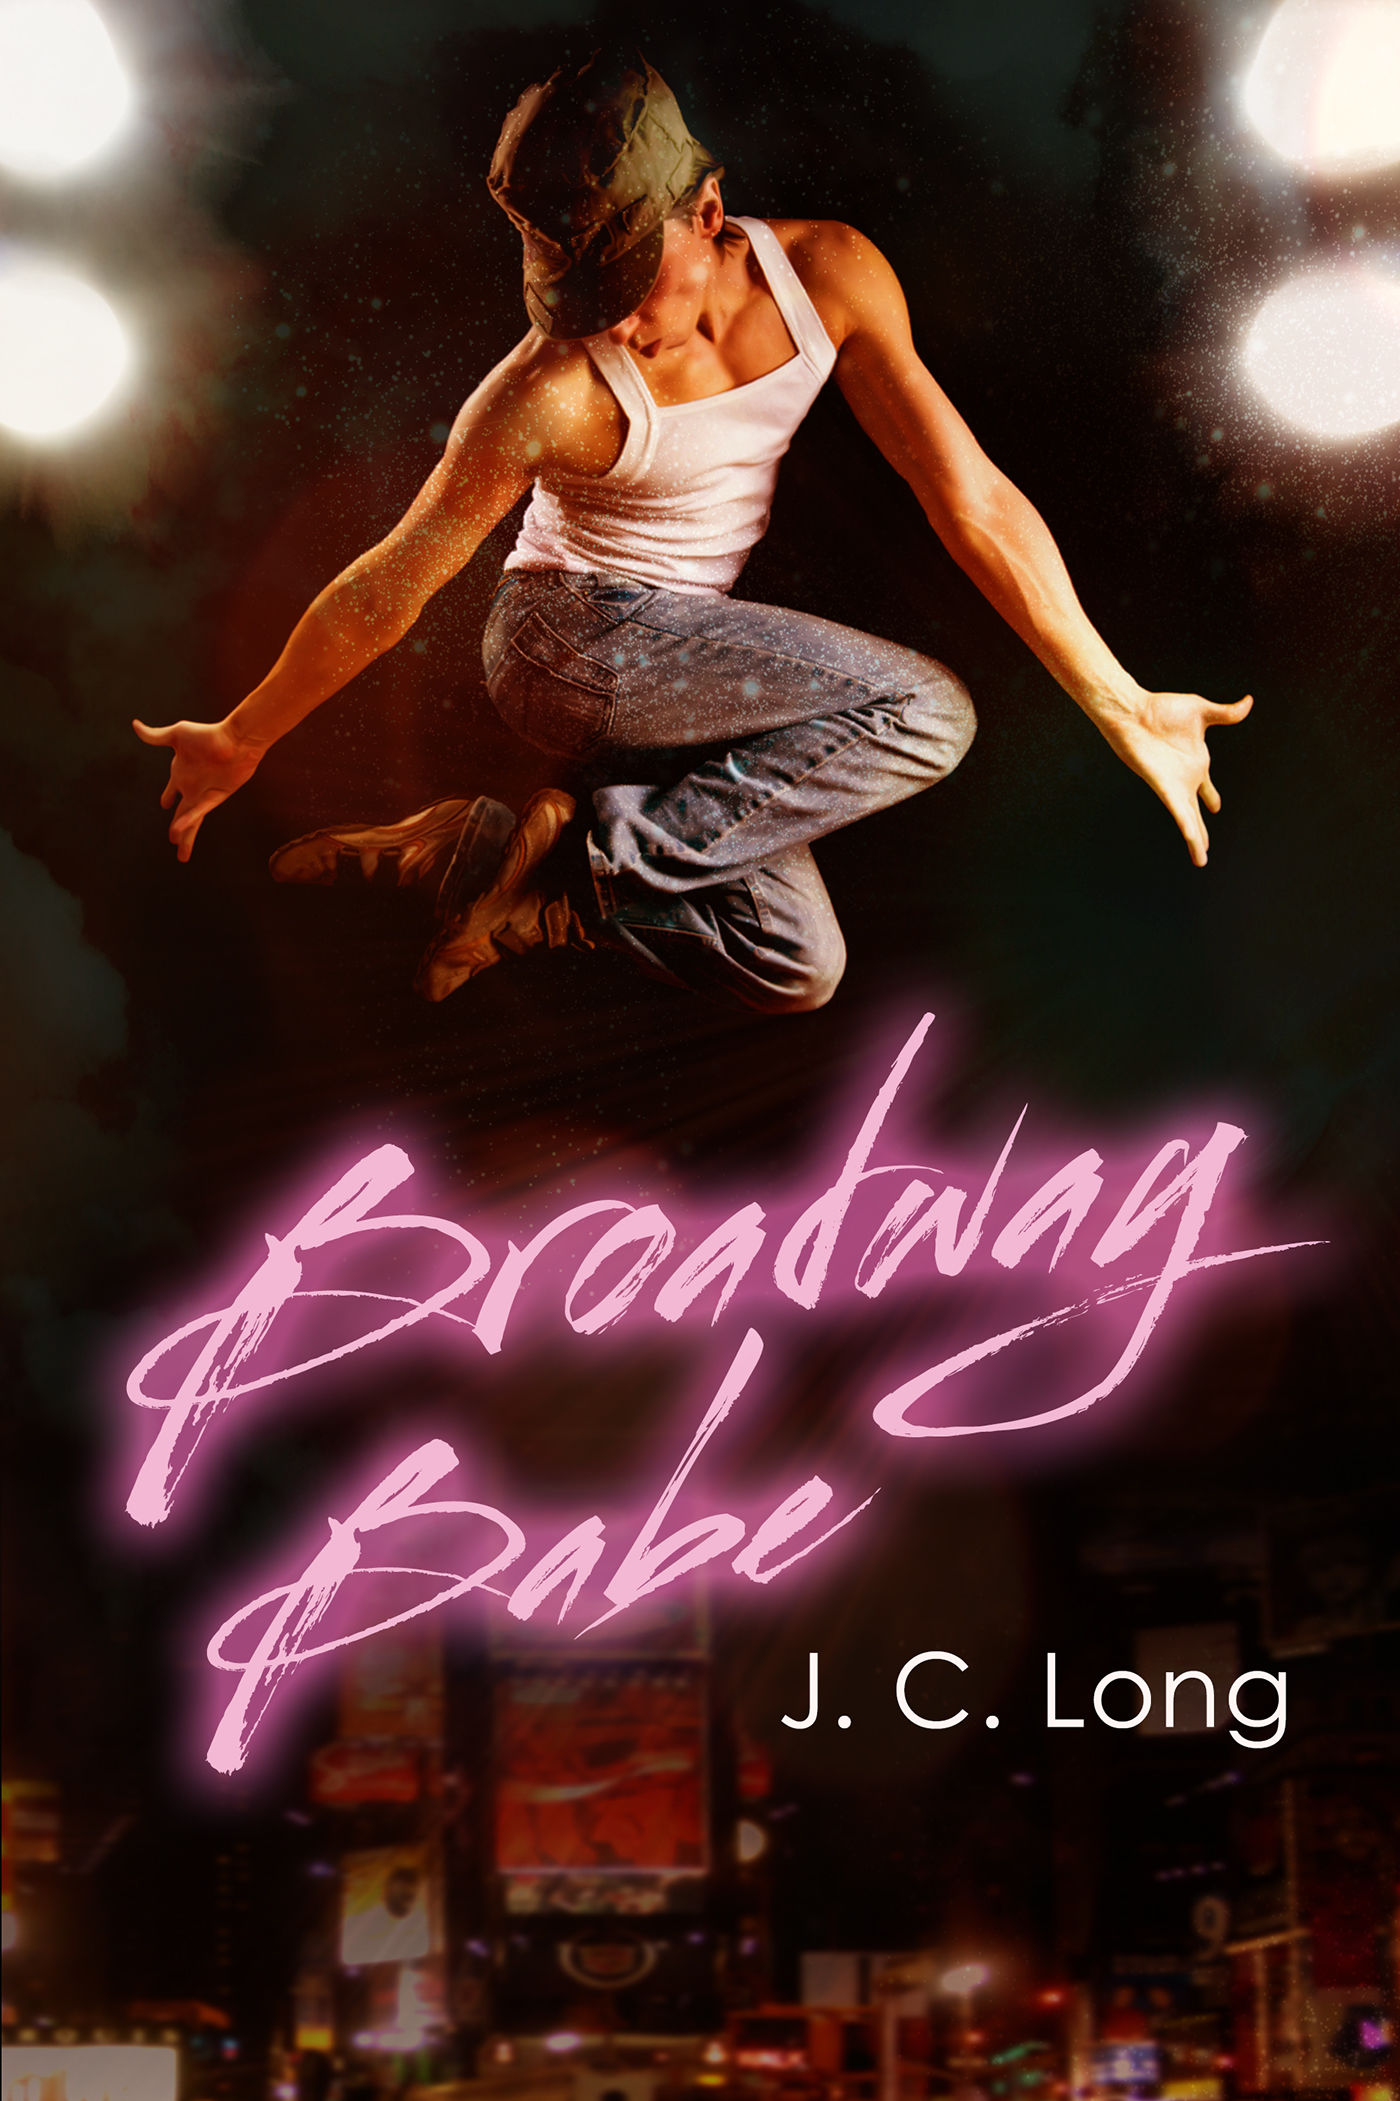 Review: Broadway Babe by J.C. Long